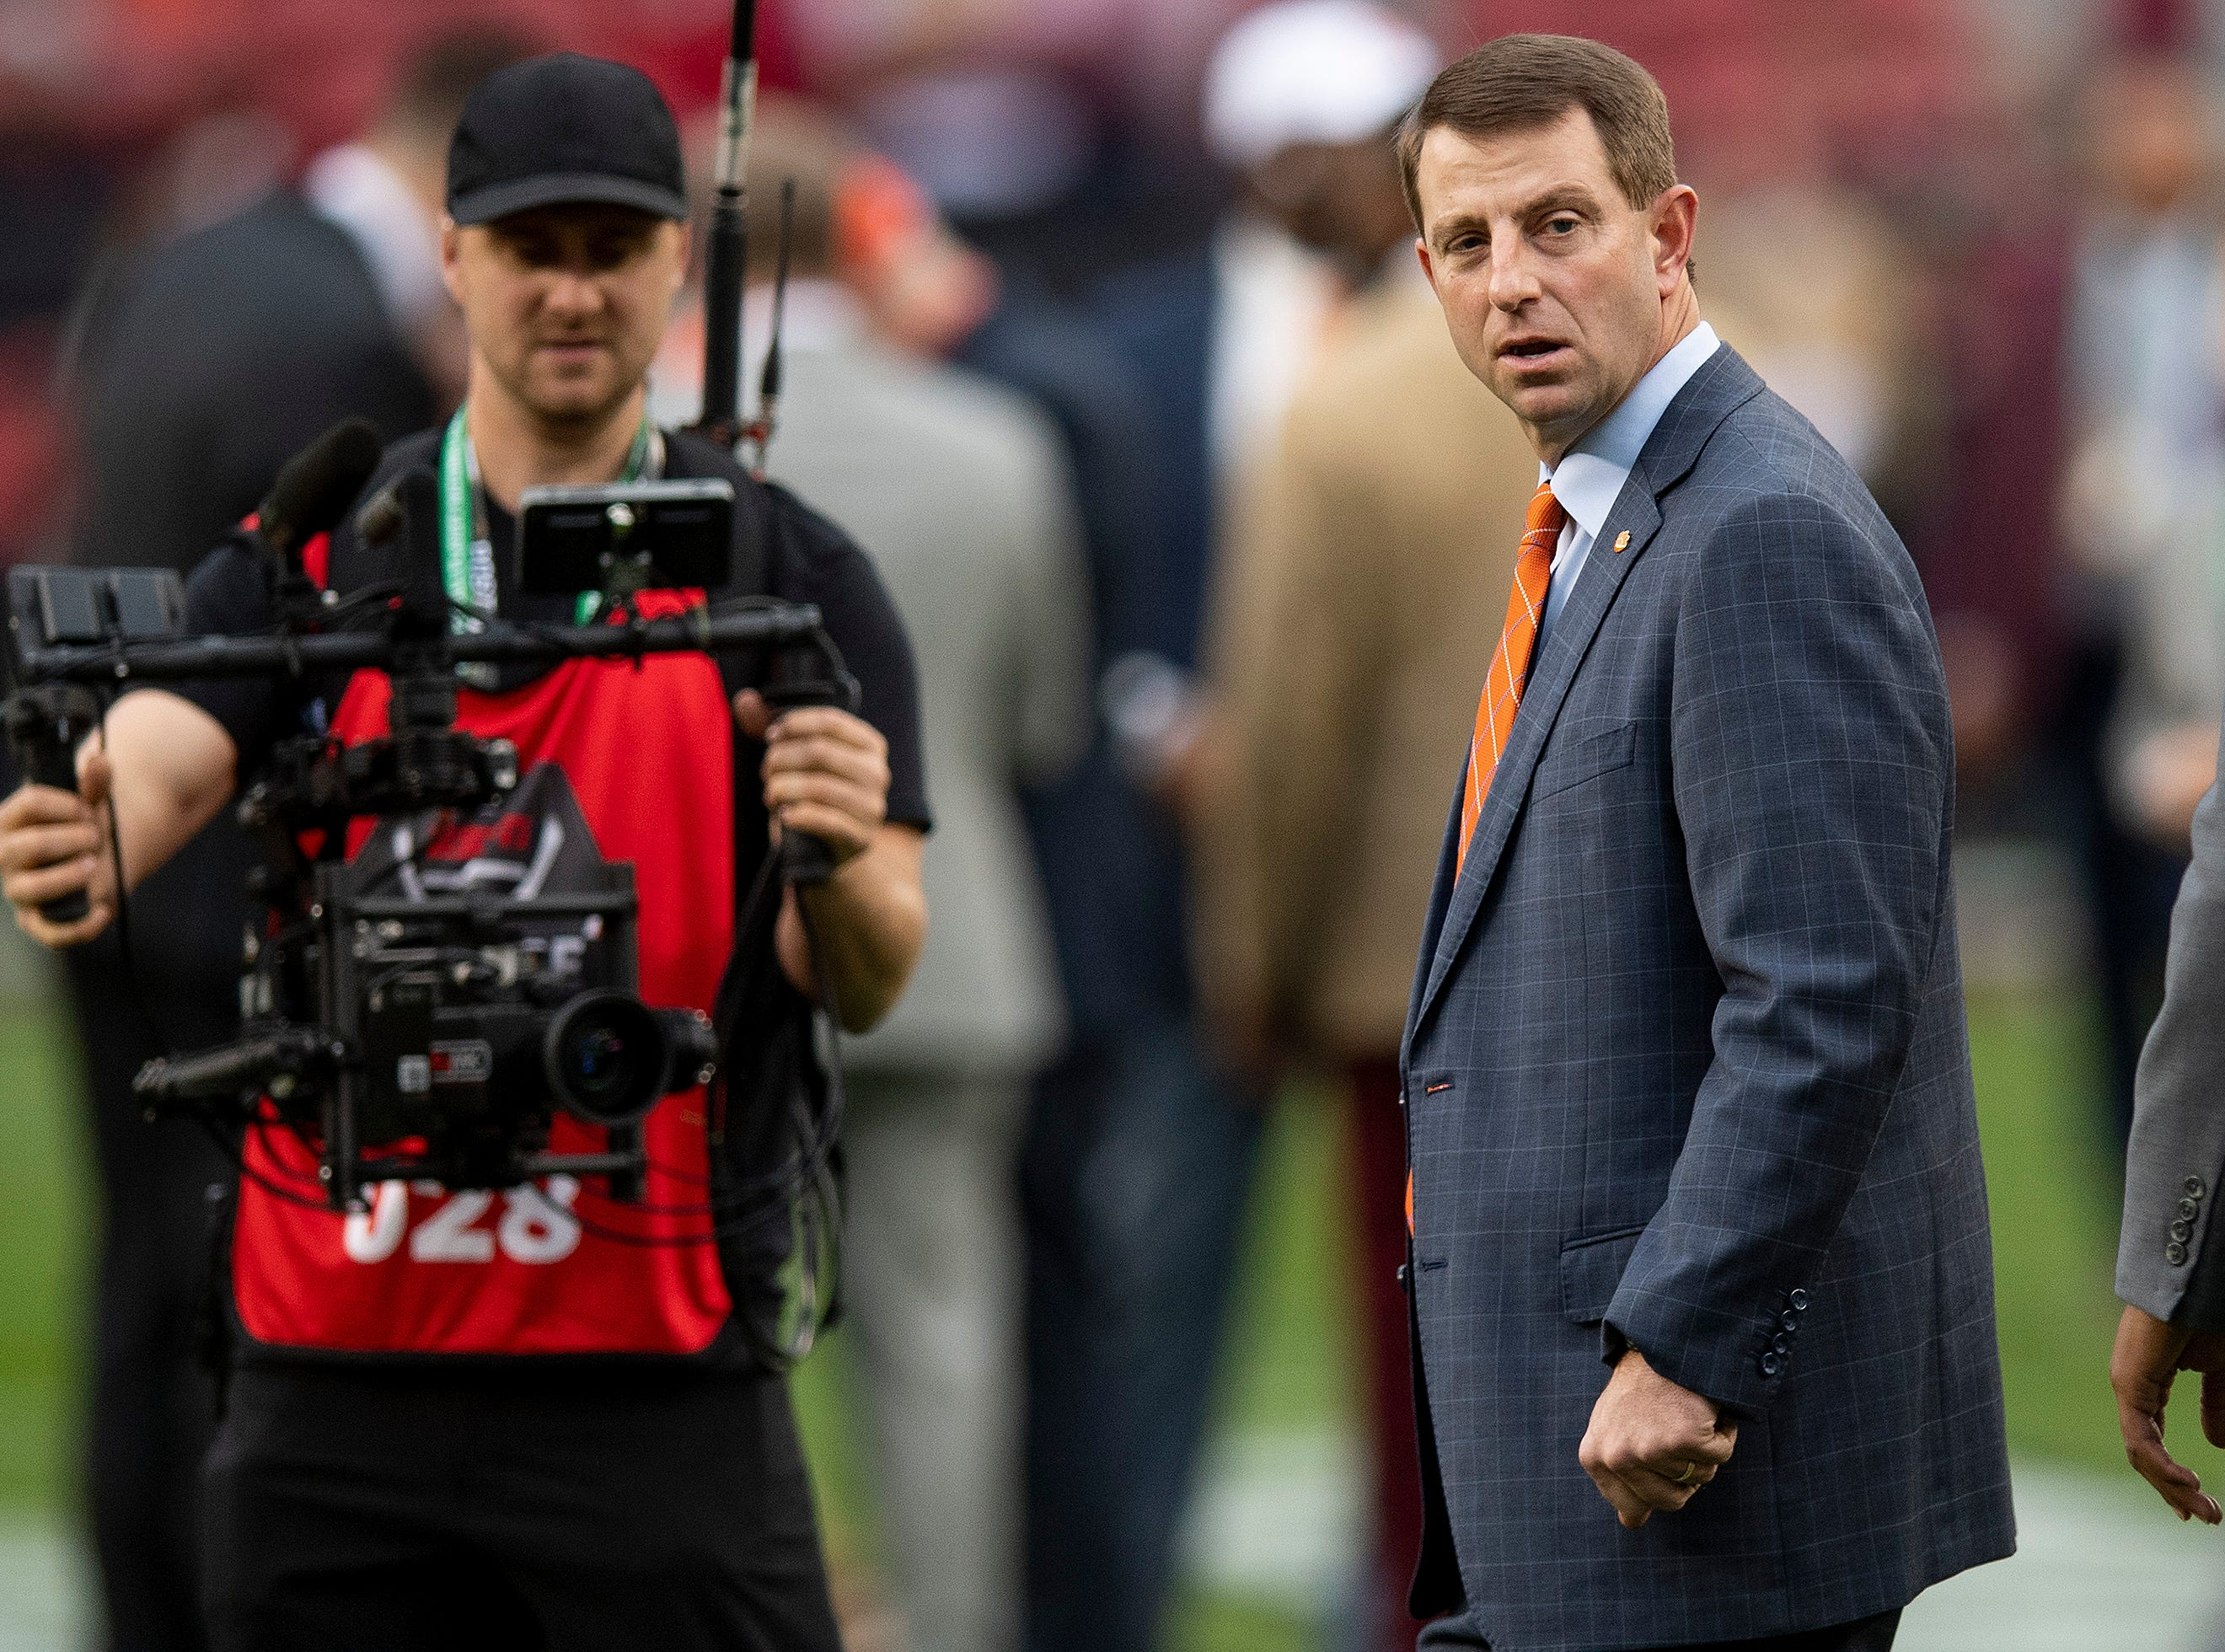 Clemson head coach Dabo Swinney arrives for the College Football Playoff National Championship game at Levi's Stadium in Santa Clara, Ca., on Monday January 7, 2019.